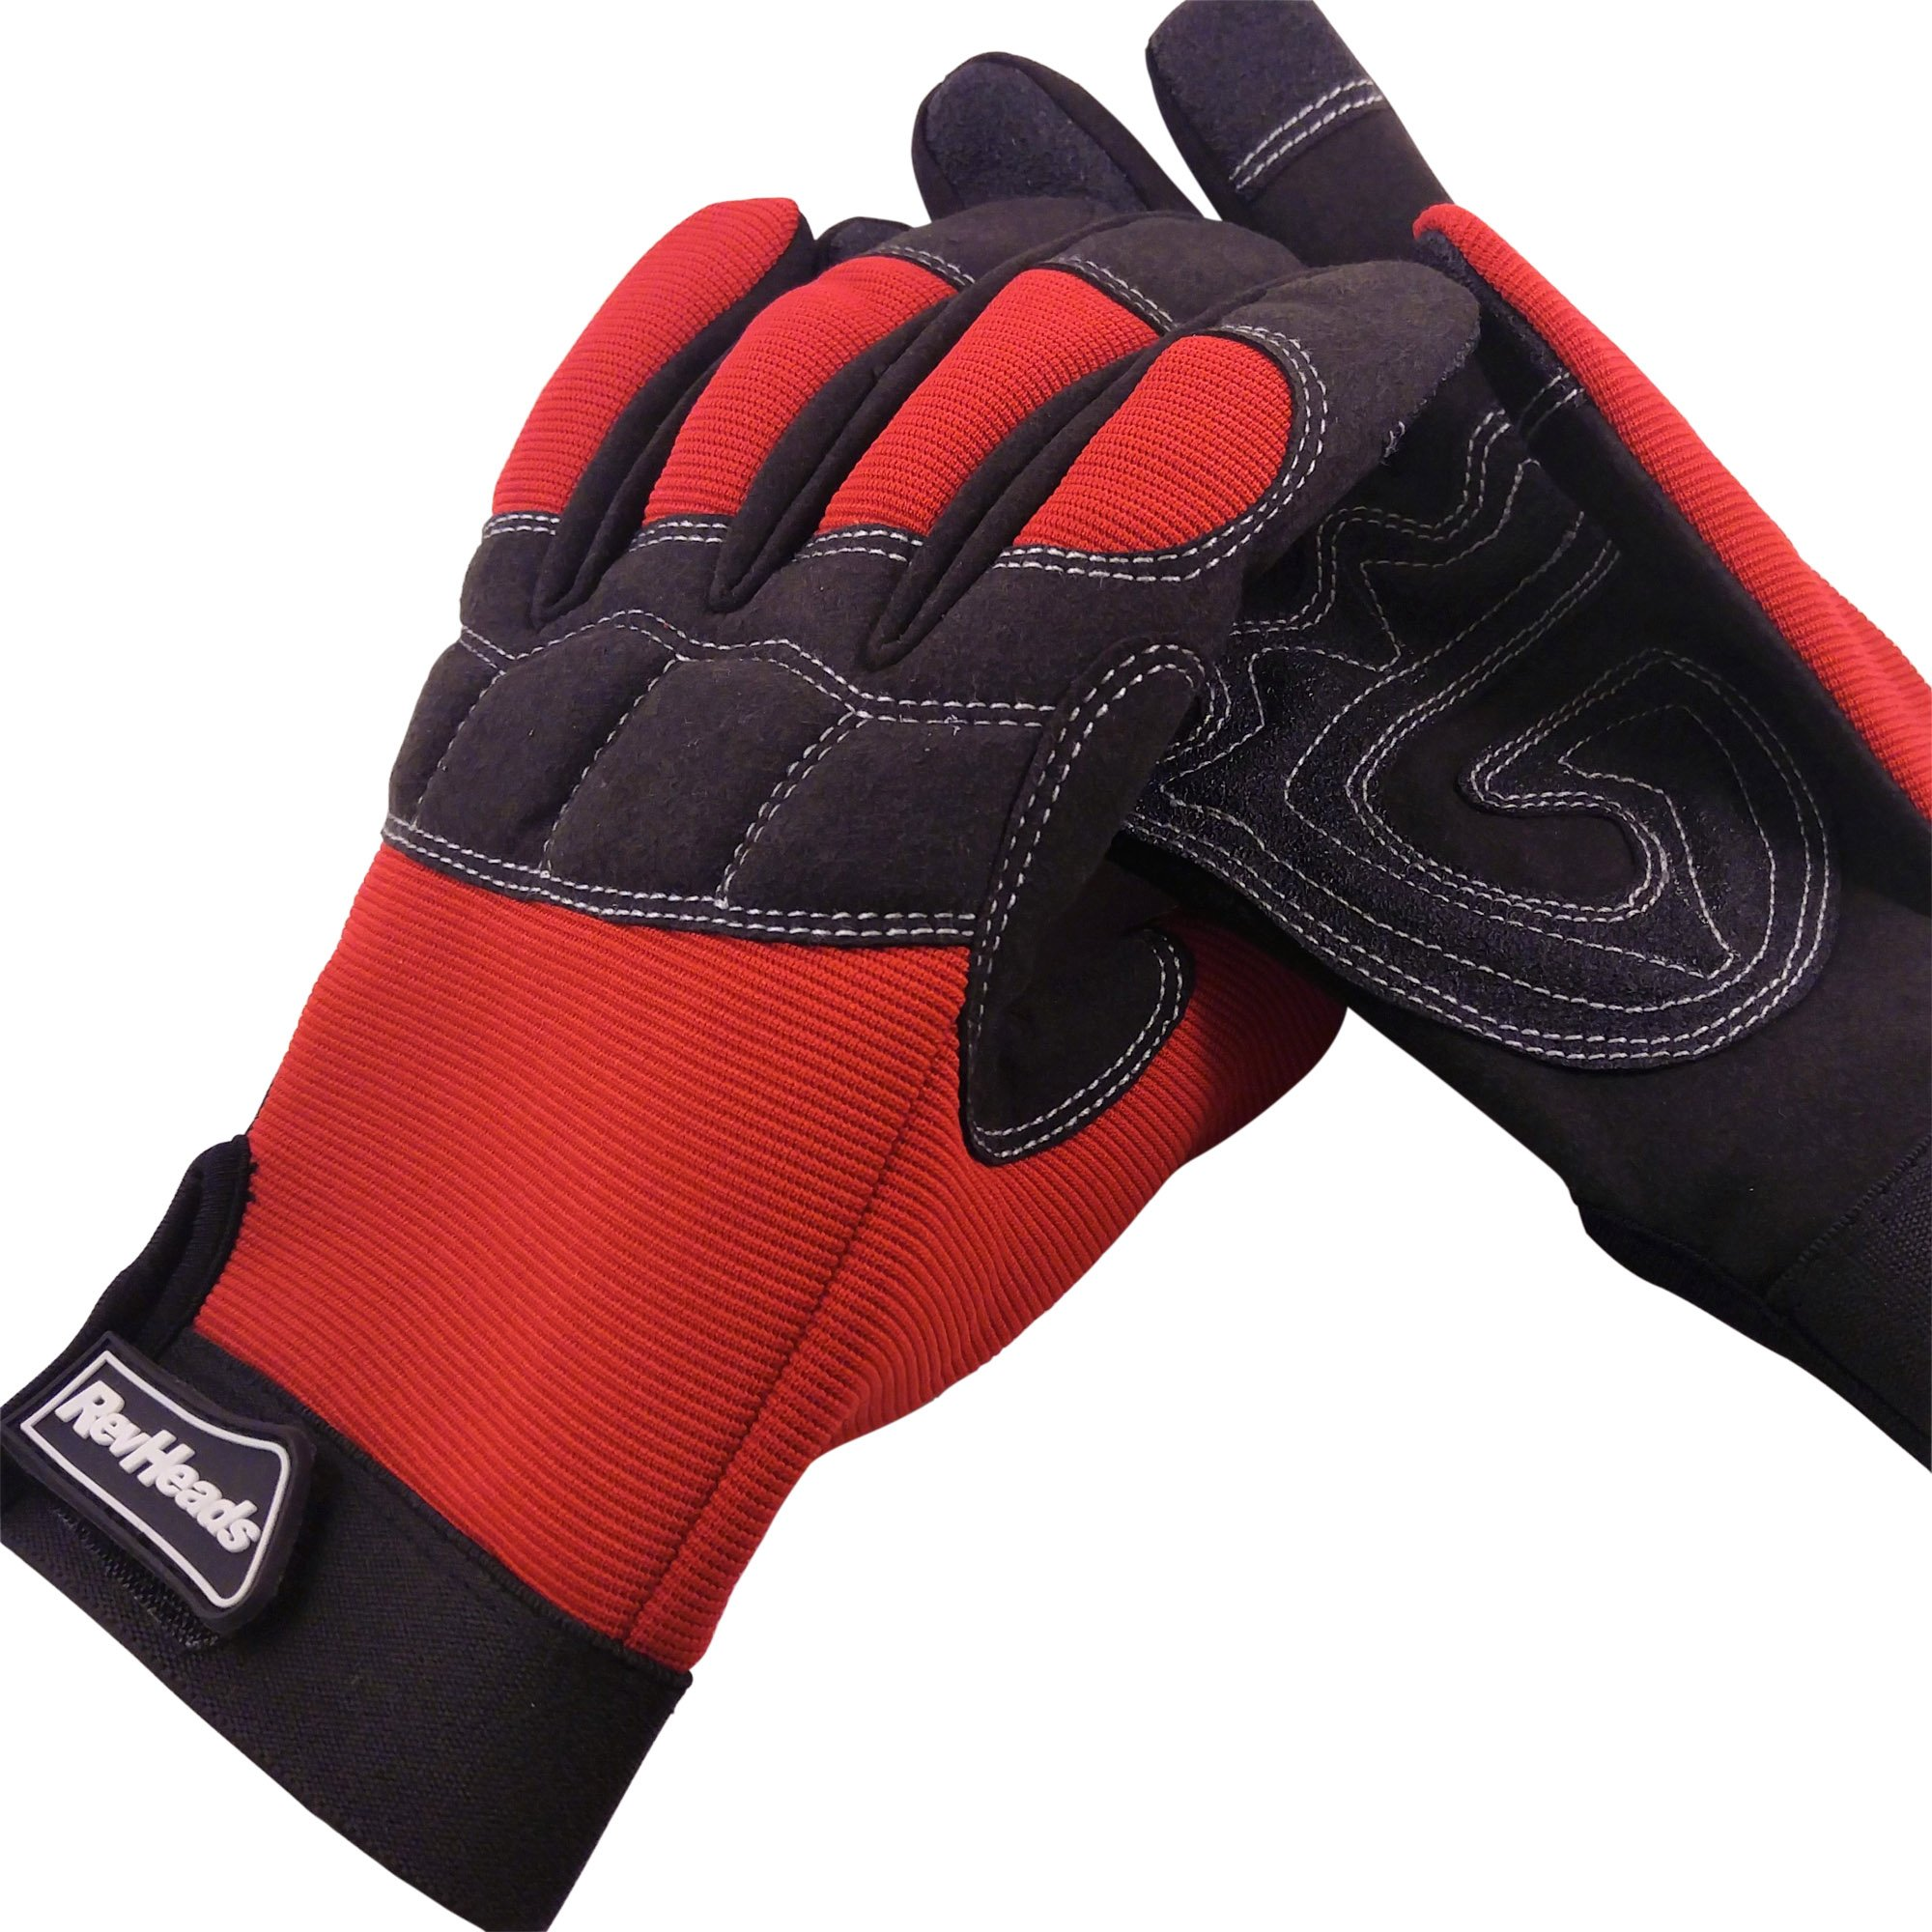 MECHANIC GLOVES For Working On Cars - Work Safety Gloves Protect Fingers And Hands - Large Size Fits Most Men, 1 Pair